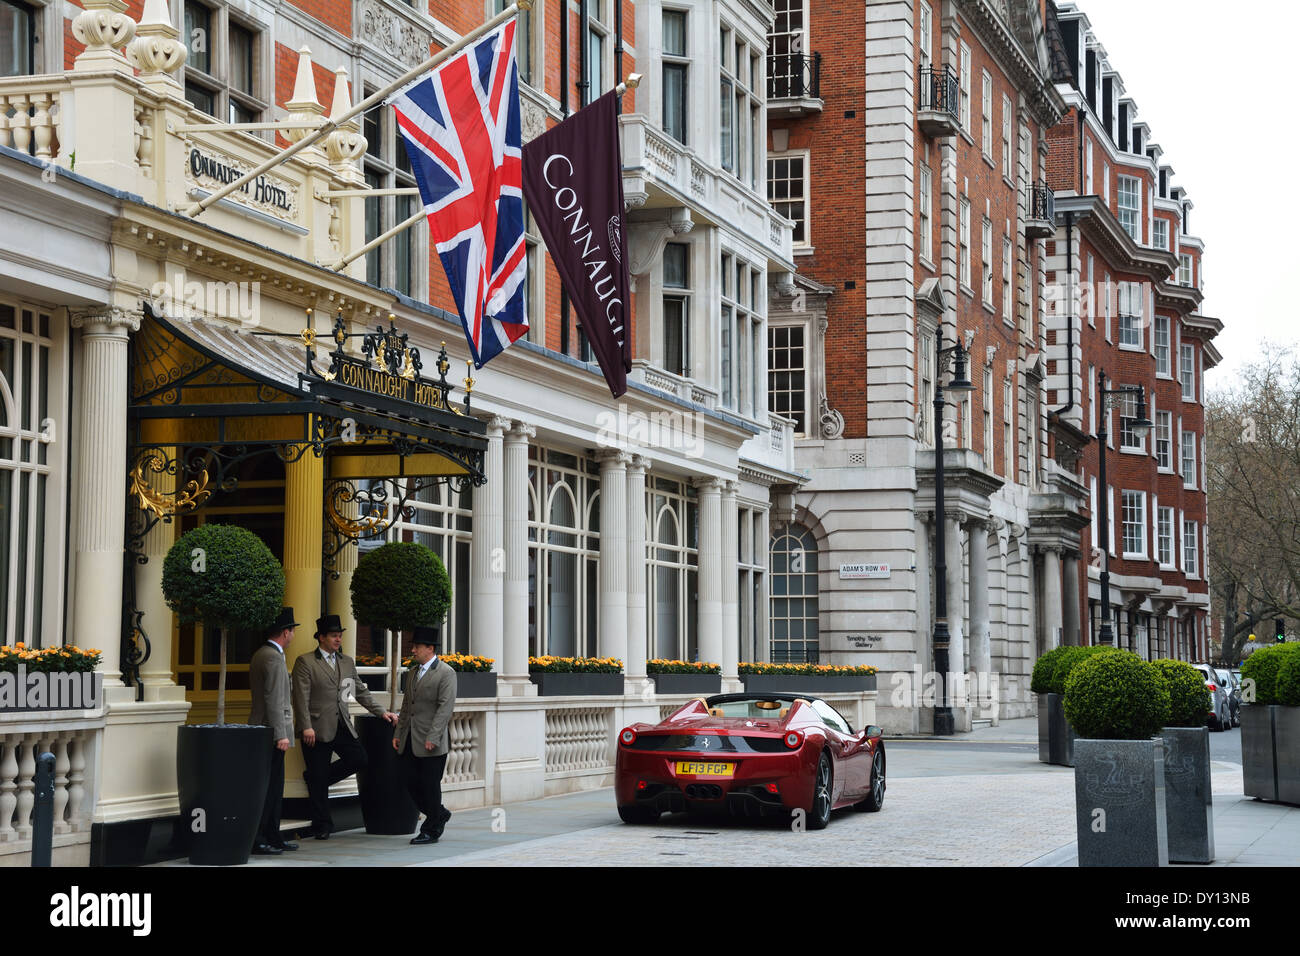 The Connaught Hotel, Mayfair, London,UK - Stock Image